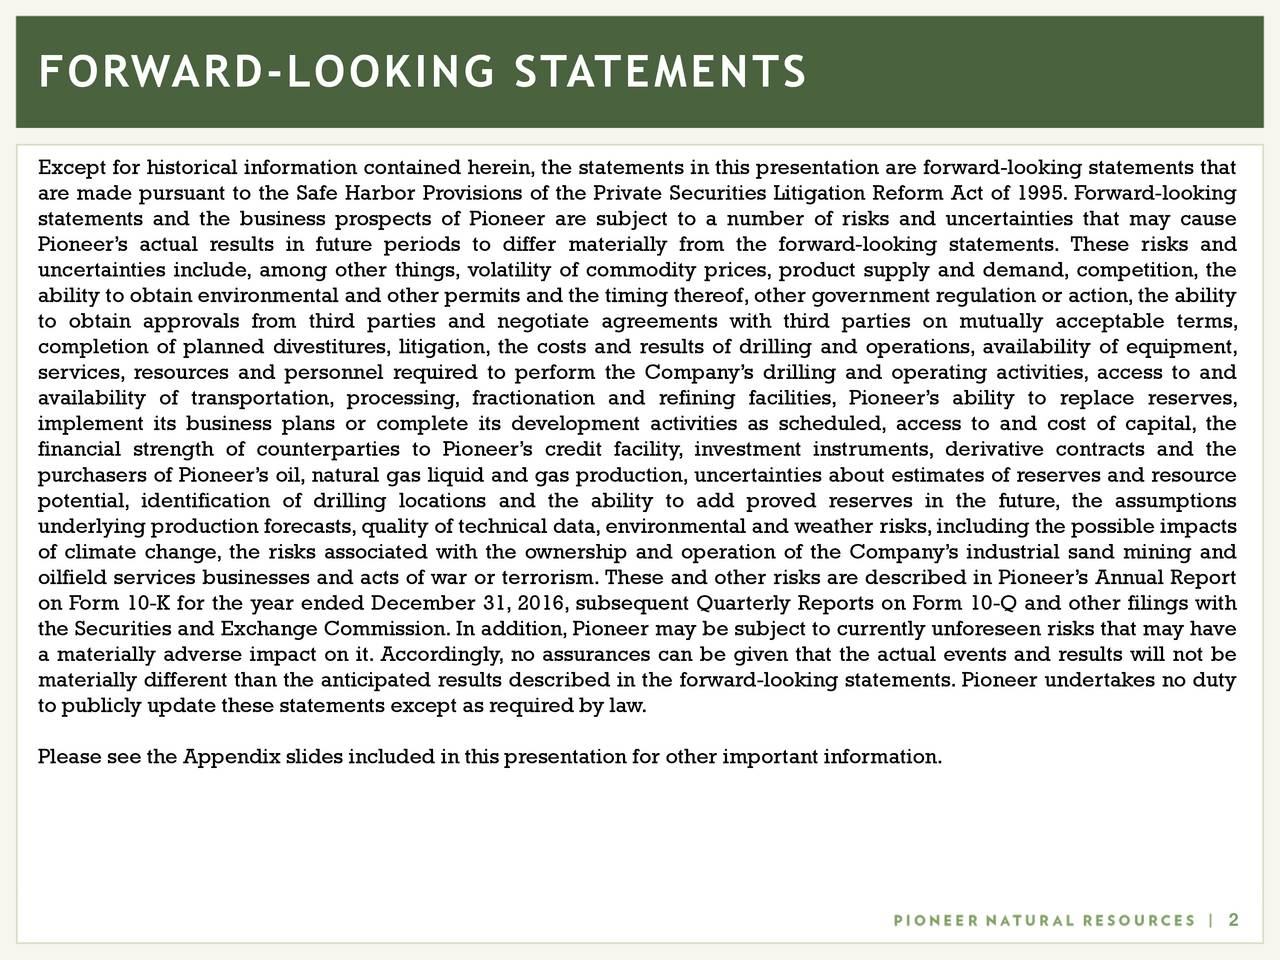 Except for historical information contained herein, the statements in this presentation are forward-looking statements that are made pursuant to the Safe Harbor Provisions of the Private Securities Litigation Reform Act of 1995. Forward-looking statements and the business prospects of Pioneer are subject to a number of risks and uncertainties that may cause Pioneers actual results in future periods to differ materially from the forward-looking statements. These risks and uncertainties include, among other things, volatility of commodity prices, product supply and demand, competition, the ability to obtain environmental and other permits and the timing thereof,other government regulation or action,the ability to obtain approvals from third parties and negotiate agreements with third parties on mutually acceptable terms, completion of planned divestitures, litigation, the costs and results of drilling and operations, availability of equipment, services, resources and personnel required to perform the Companys drilling and operating activities, access to and availability of transportation, processing, fractionation and refining facilities, Pioneers ability to replace reserves, implement its business plans or complete its development activities as scheduled, access to and cost of capital, the financial strength of counterparties to Pioneers credit facility, investment instruments, derivative contracts and the purchasers of Pioneers oil, natural gas liquid and gas production, uncertainties about estimates of reserves and resource potential, identification of drilling locations and the ability to add proved reserves in the future, the assumptions underlying production forecasts,quality of technical data,environmental and weather risks,including the possible impacts of climate change, the risks associated with the ownership and operation of the Companys industrial sand mining and oilfield services businesses and acts of war or terrorism. These and other risks are described